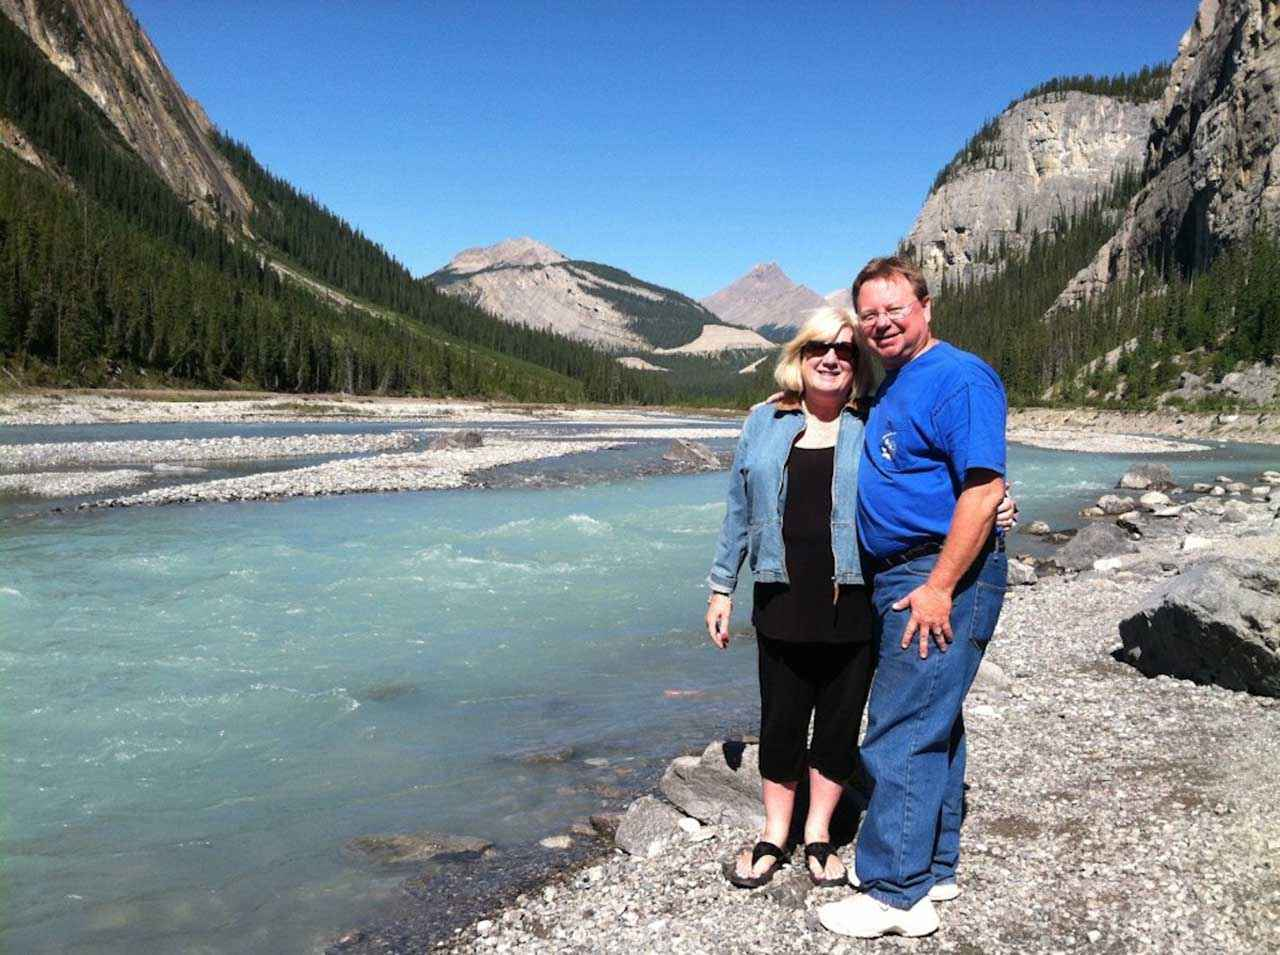 Betsy Peter PassingThru Banff - Travel Love story